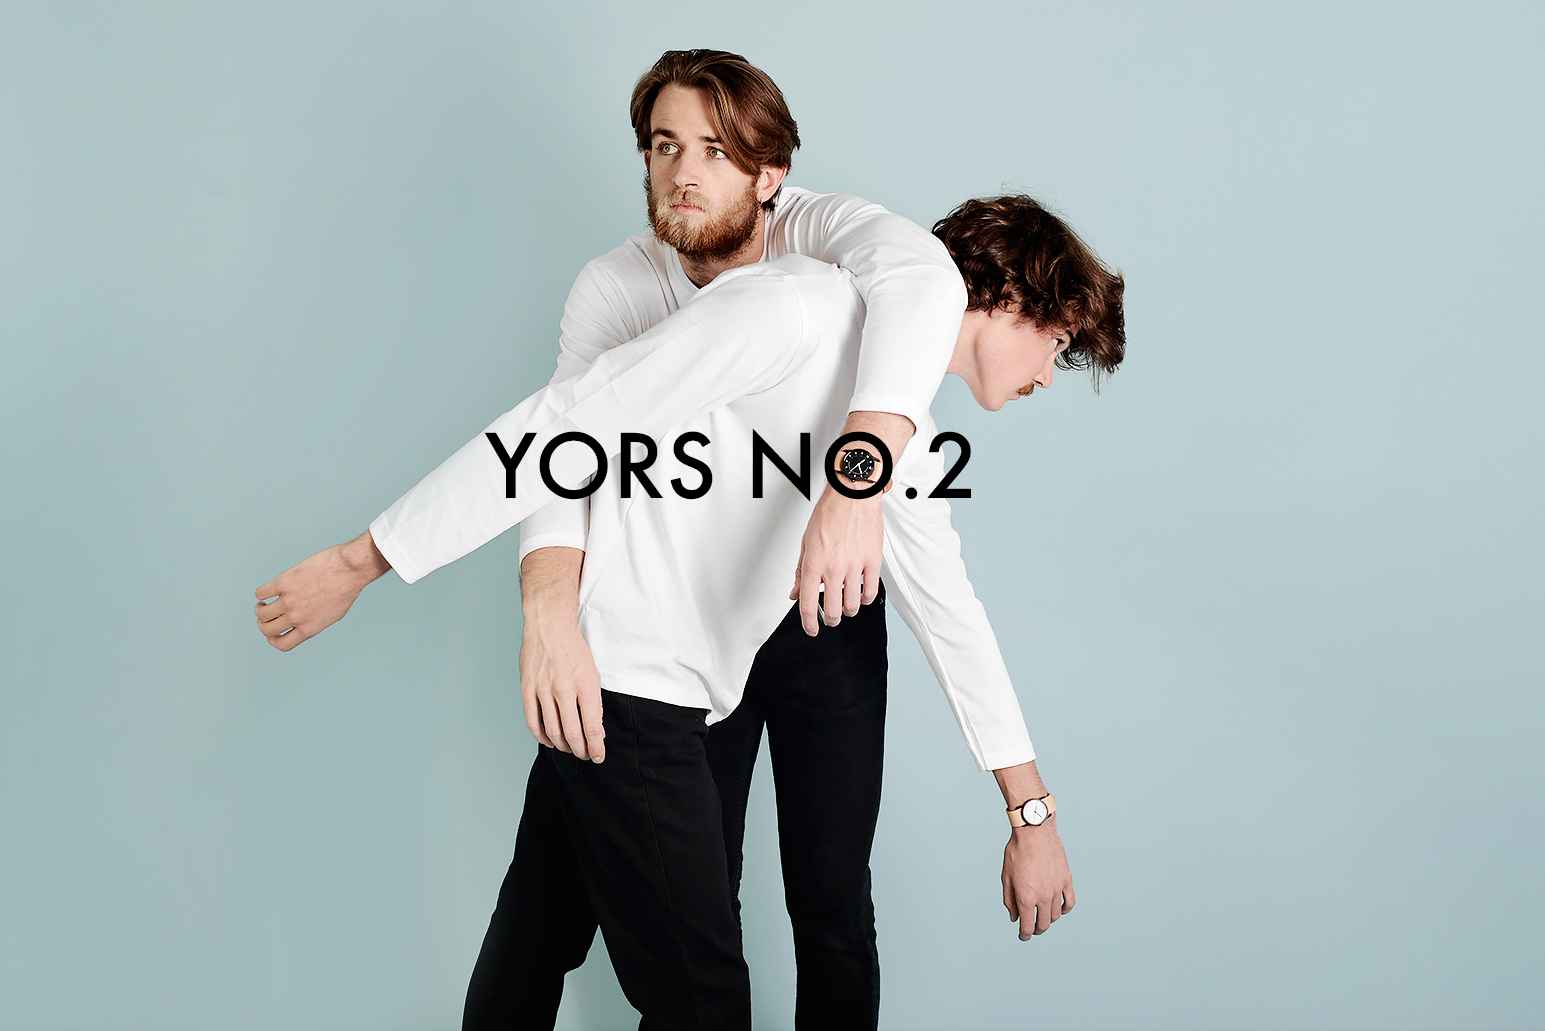 YORS NO.2 Introduction